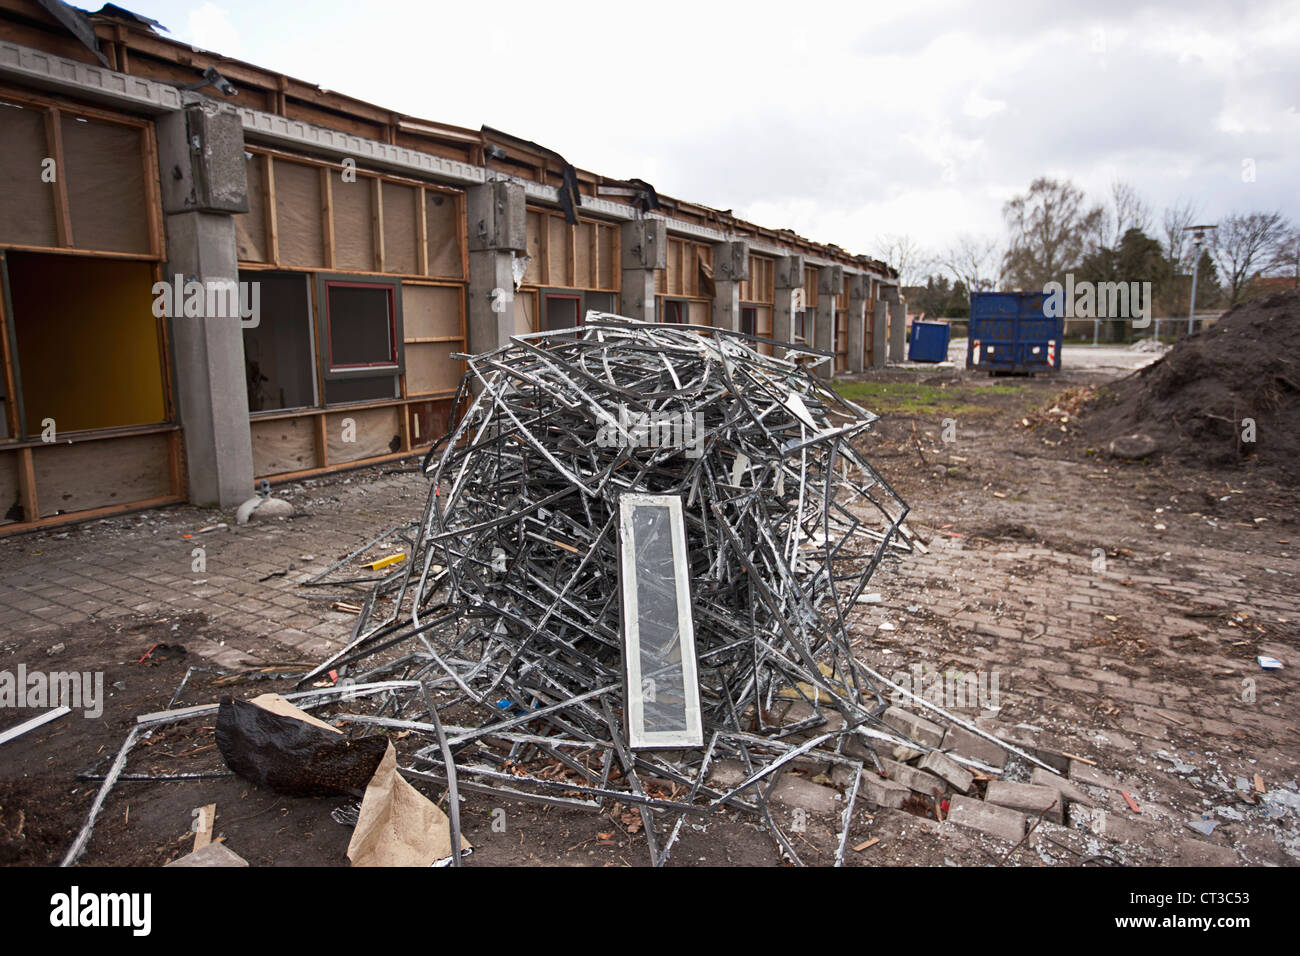 Pile of scrap metal at construction site Stock Photo